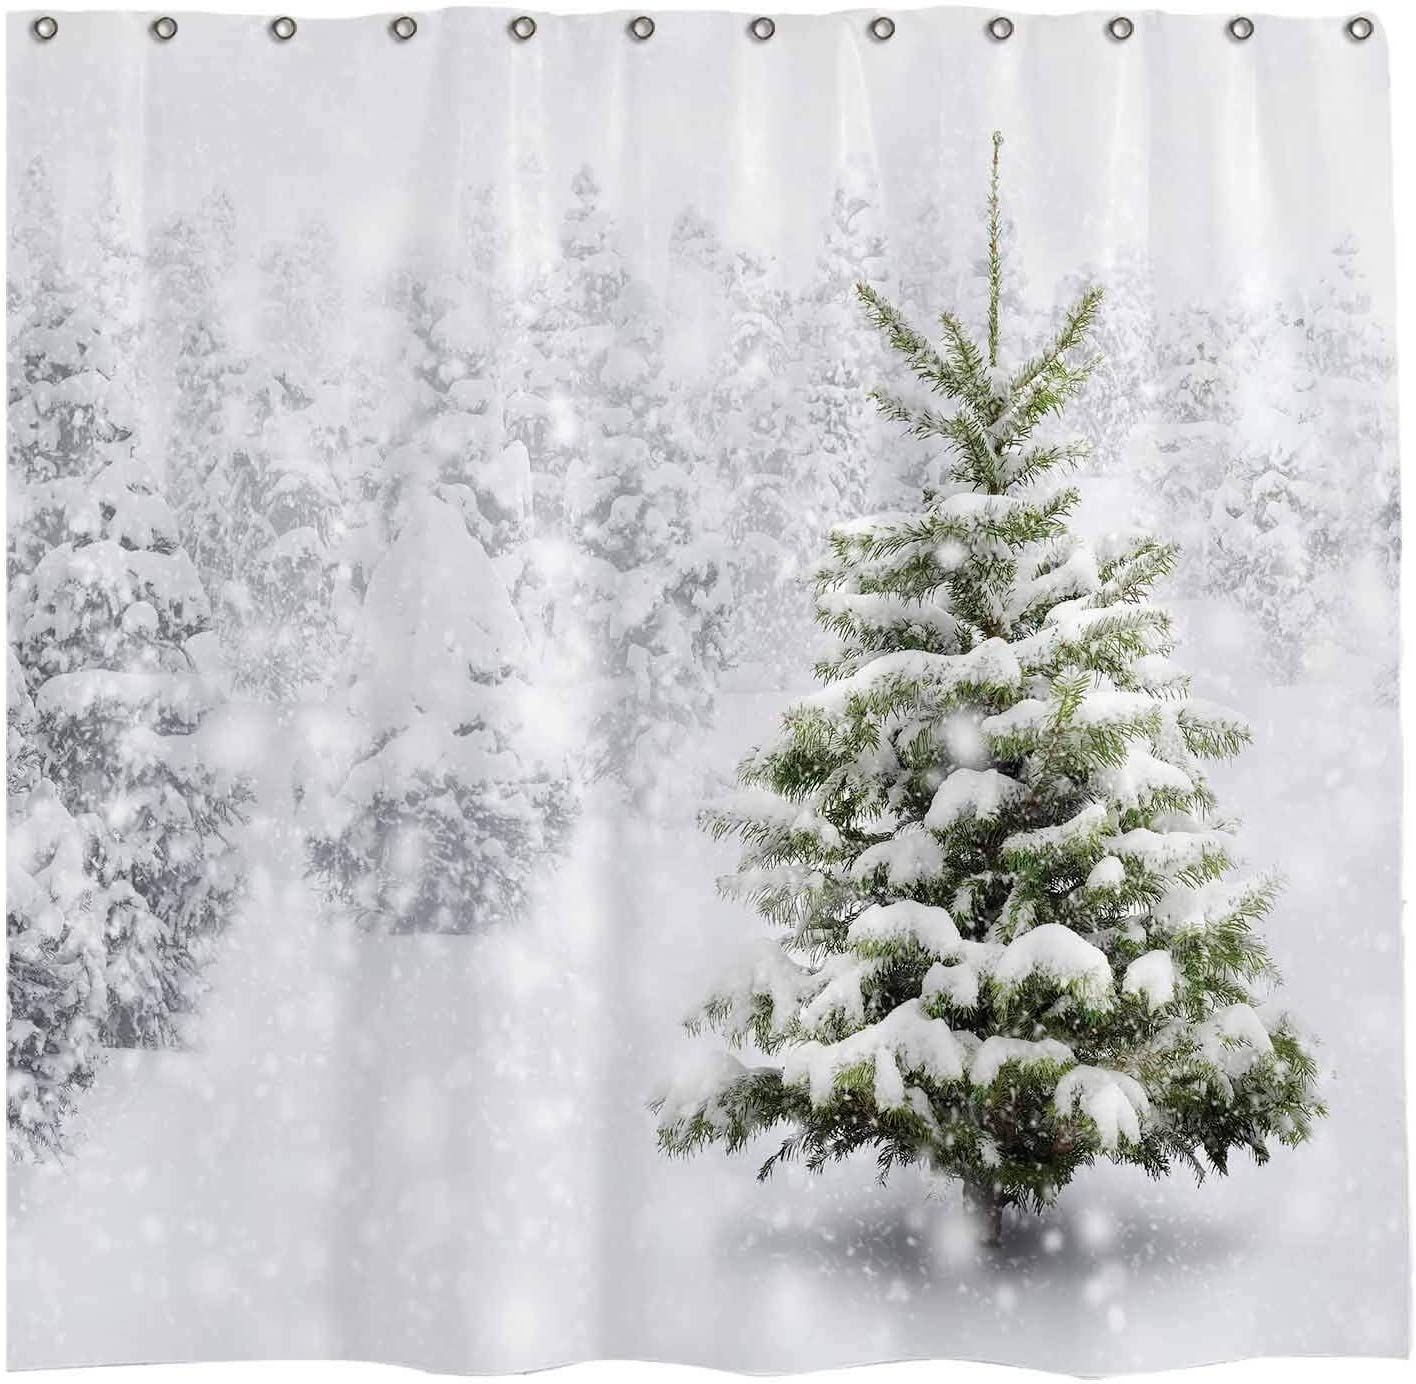 Allenjoy 72x72 inch Christmas Shower Curtain Set with 12 Hooks Natural Winter Forest Snowflake Snowfall Bathroom Curtain Durable Waterproof Fabric Bathtub Sets Home Decor